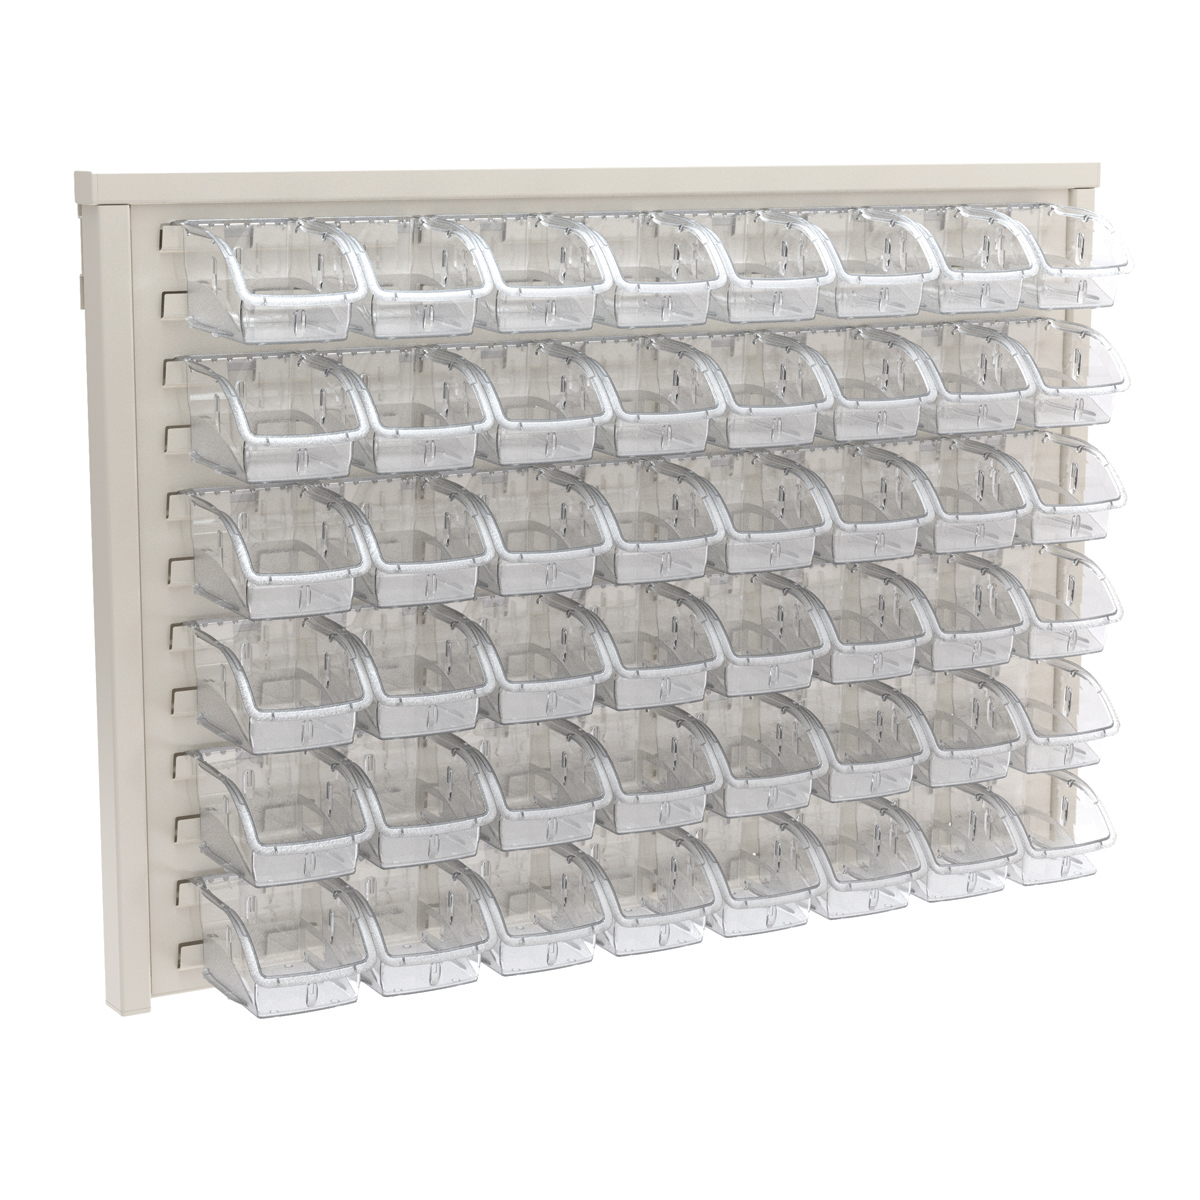 Item DISCONTINUED by Manufacturer.  ReadySpace Wall Rack w/ 48 InSight Bins 305A1, White/Clear (30536A1).  This item sold in carton quantities of 1.